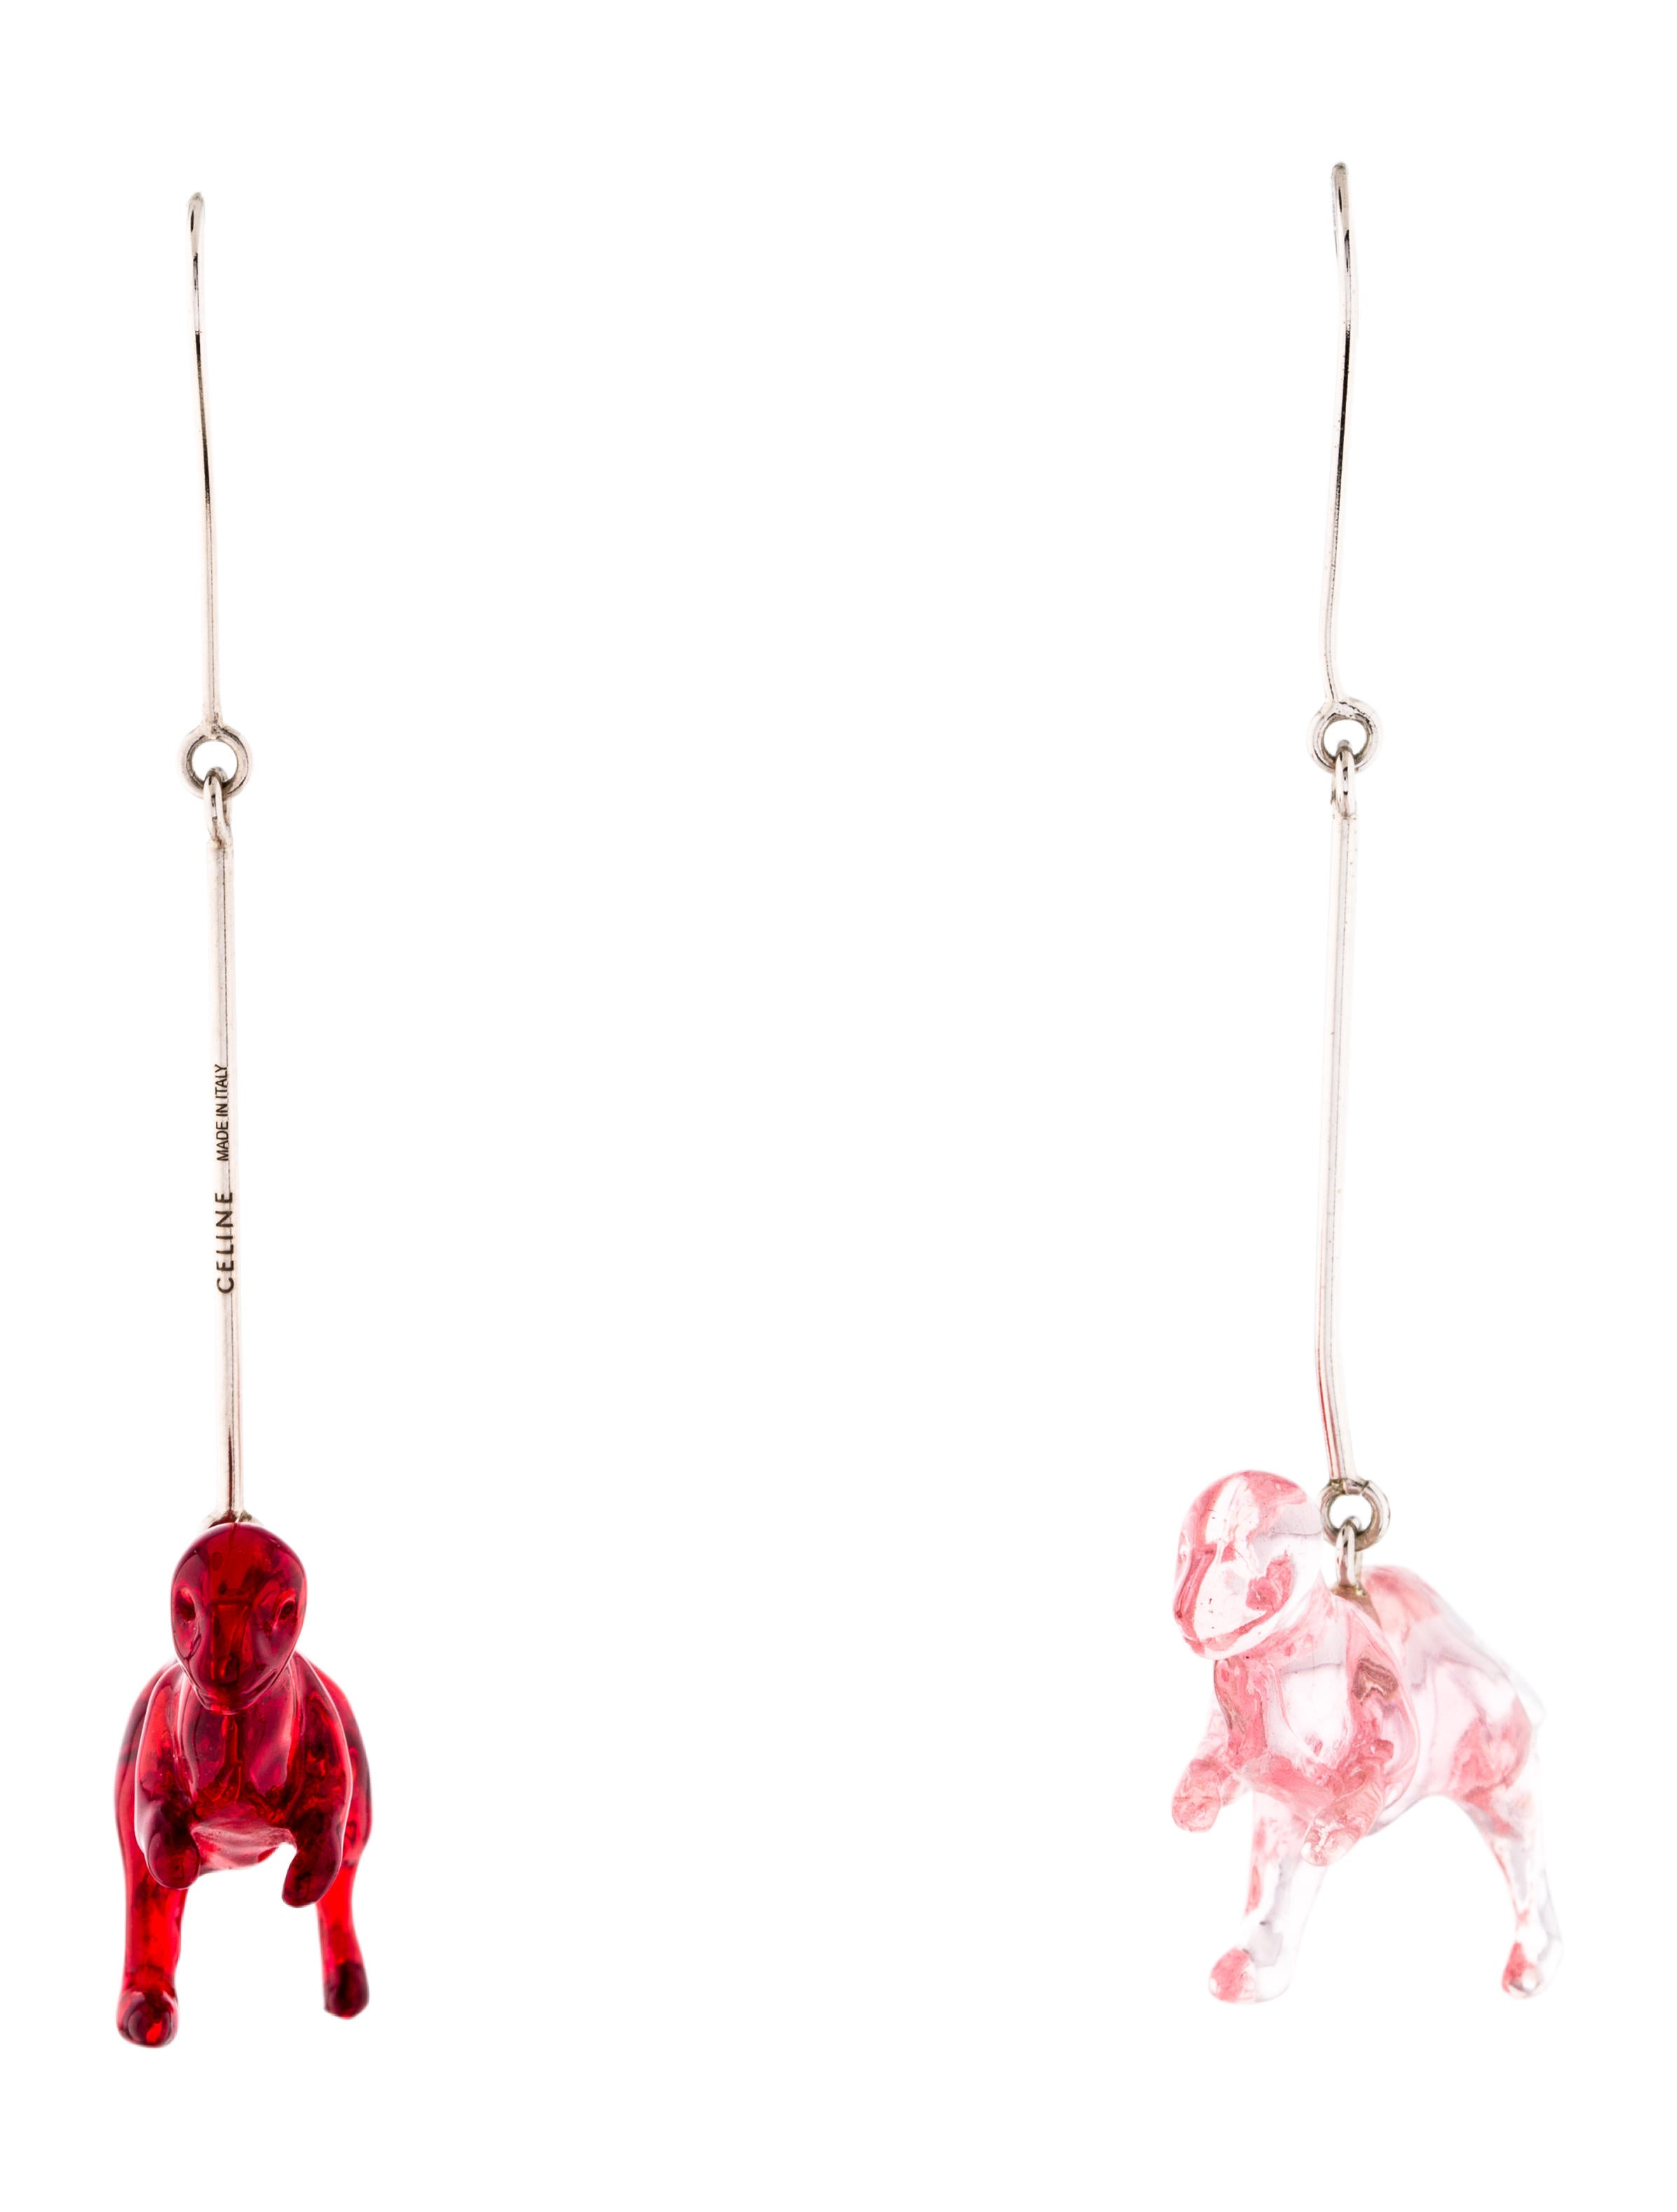 68186cf5fdc Celine Céline Dinosaur Resin Drop Earrings - Earrings - CEL77548 ...